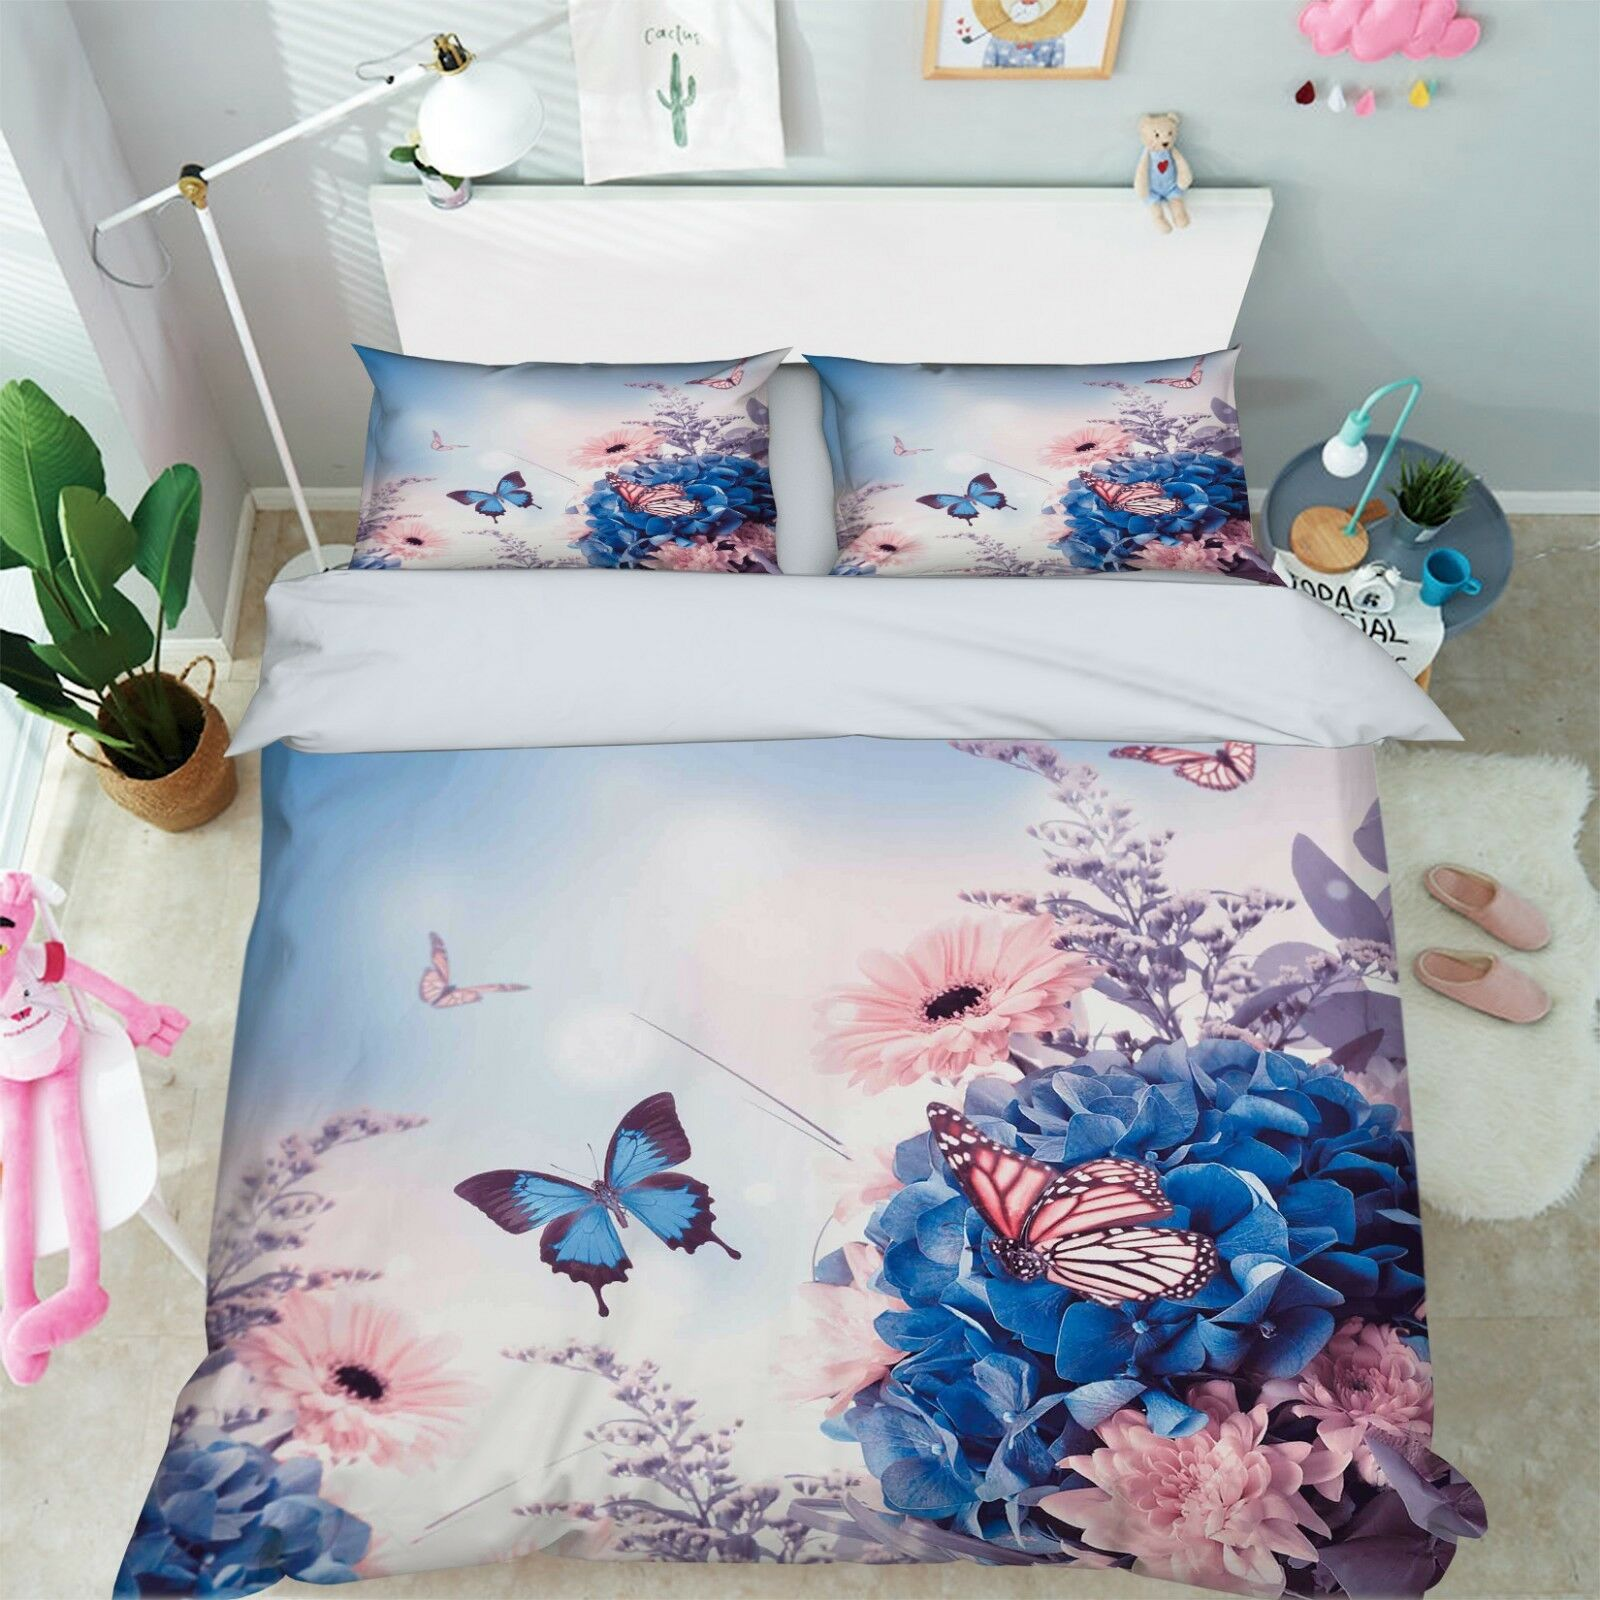 3D Flower Butterfly 8 Bed Pillowcases Quilt Duvet Cover Set Single King UK Lemon